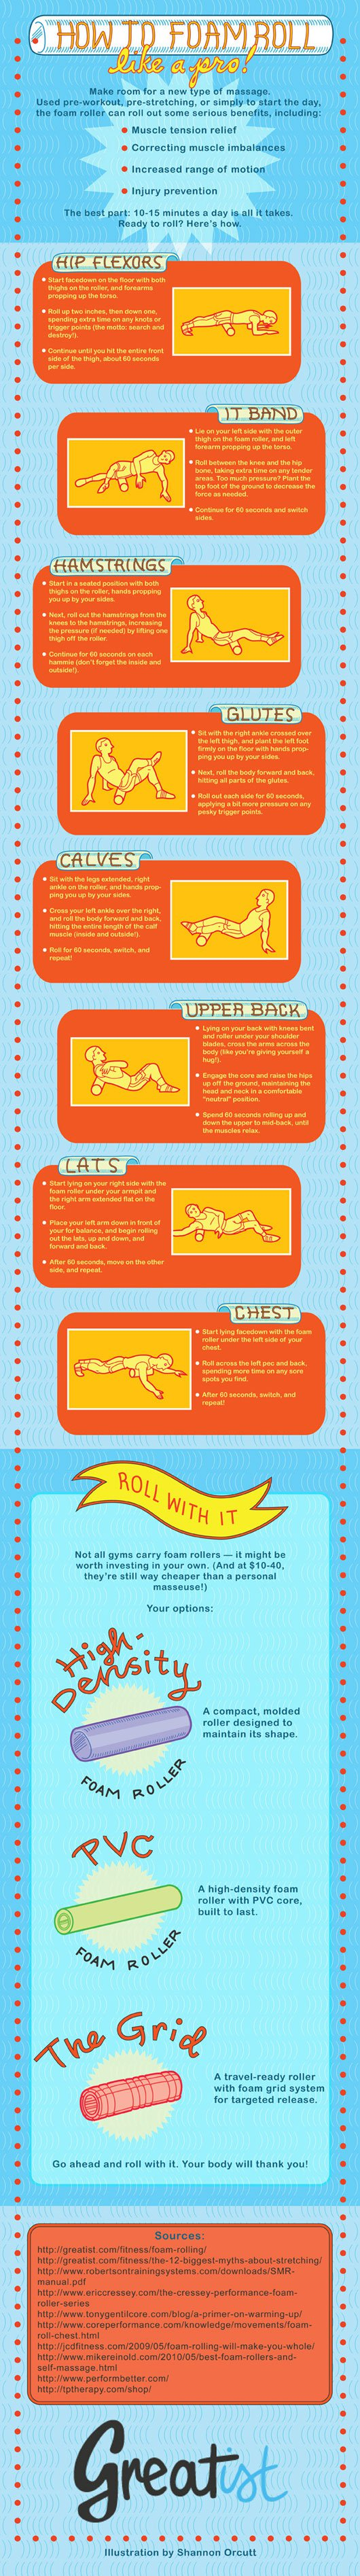 Foam-Rolling-Infographic-530